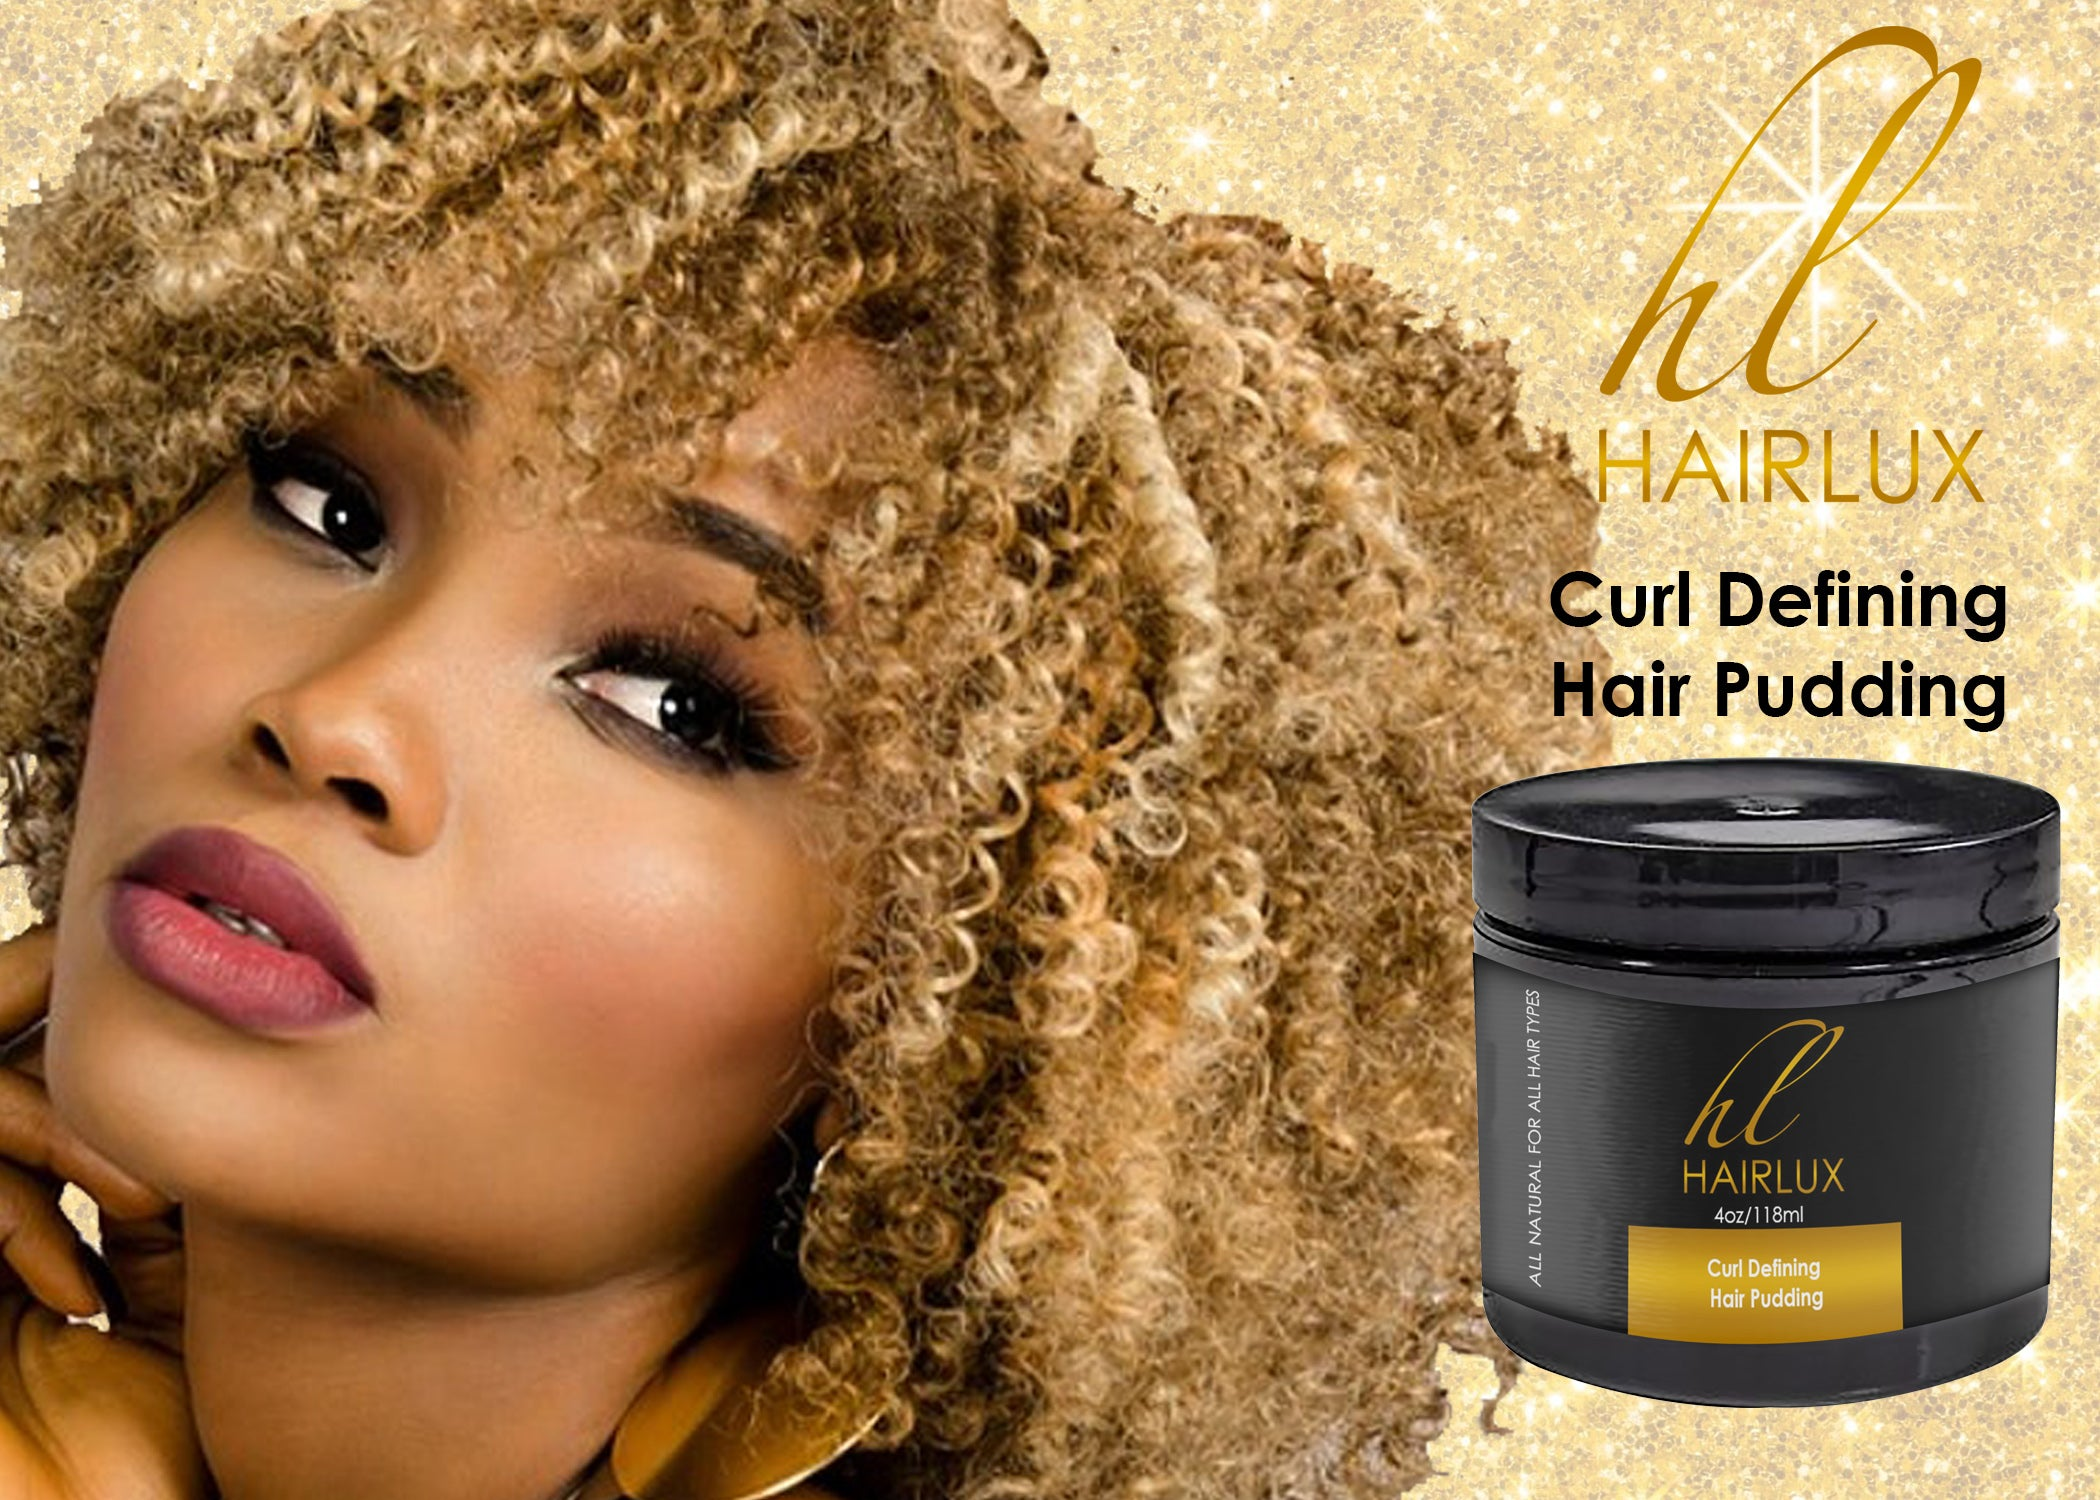 Curl Defining Hair Pudding